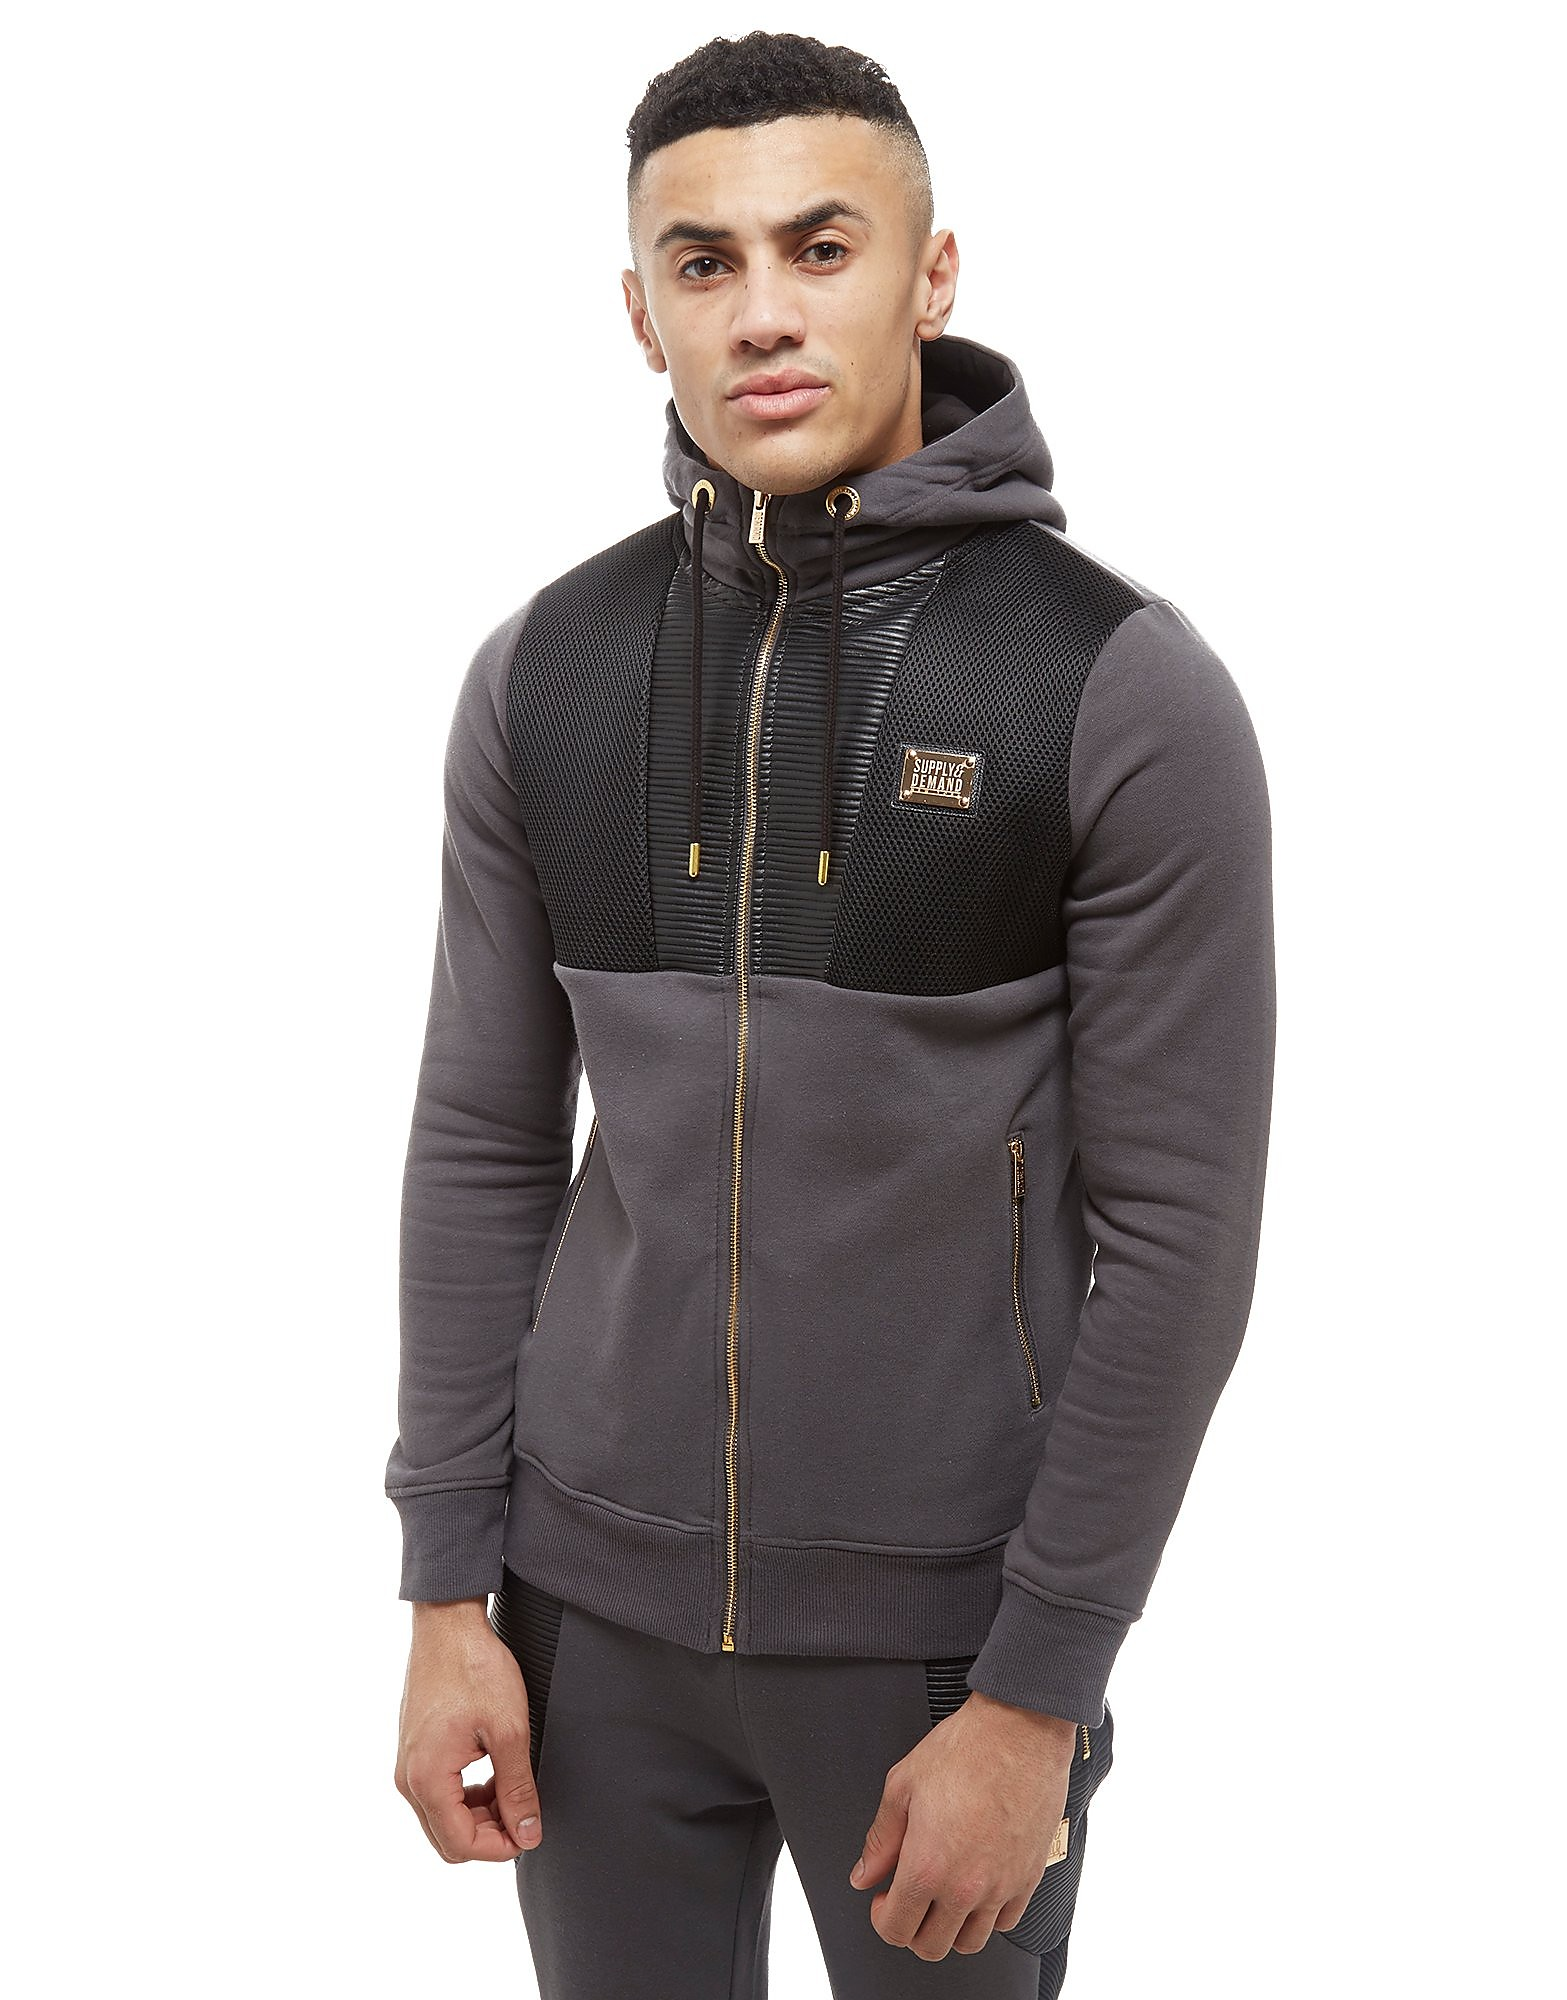 Supply & Demand Lorenzo Hoodie - Only at JD, Grey